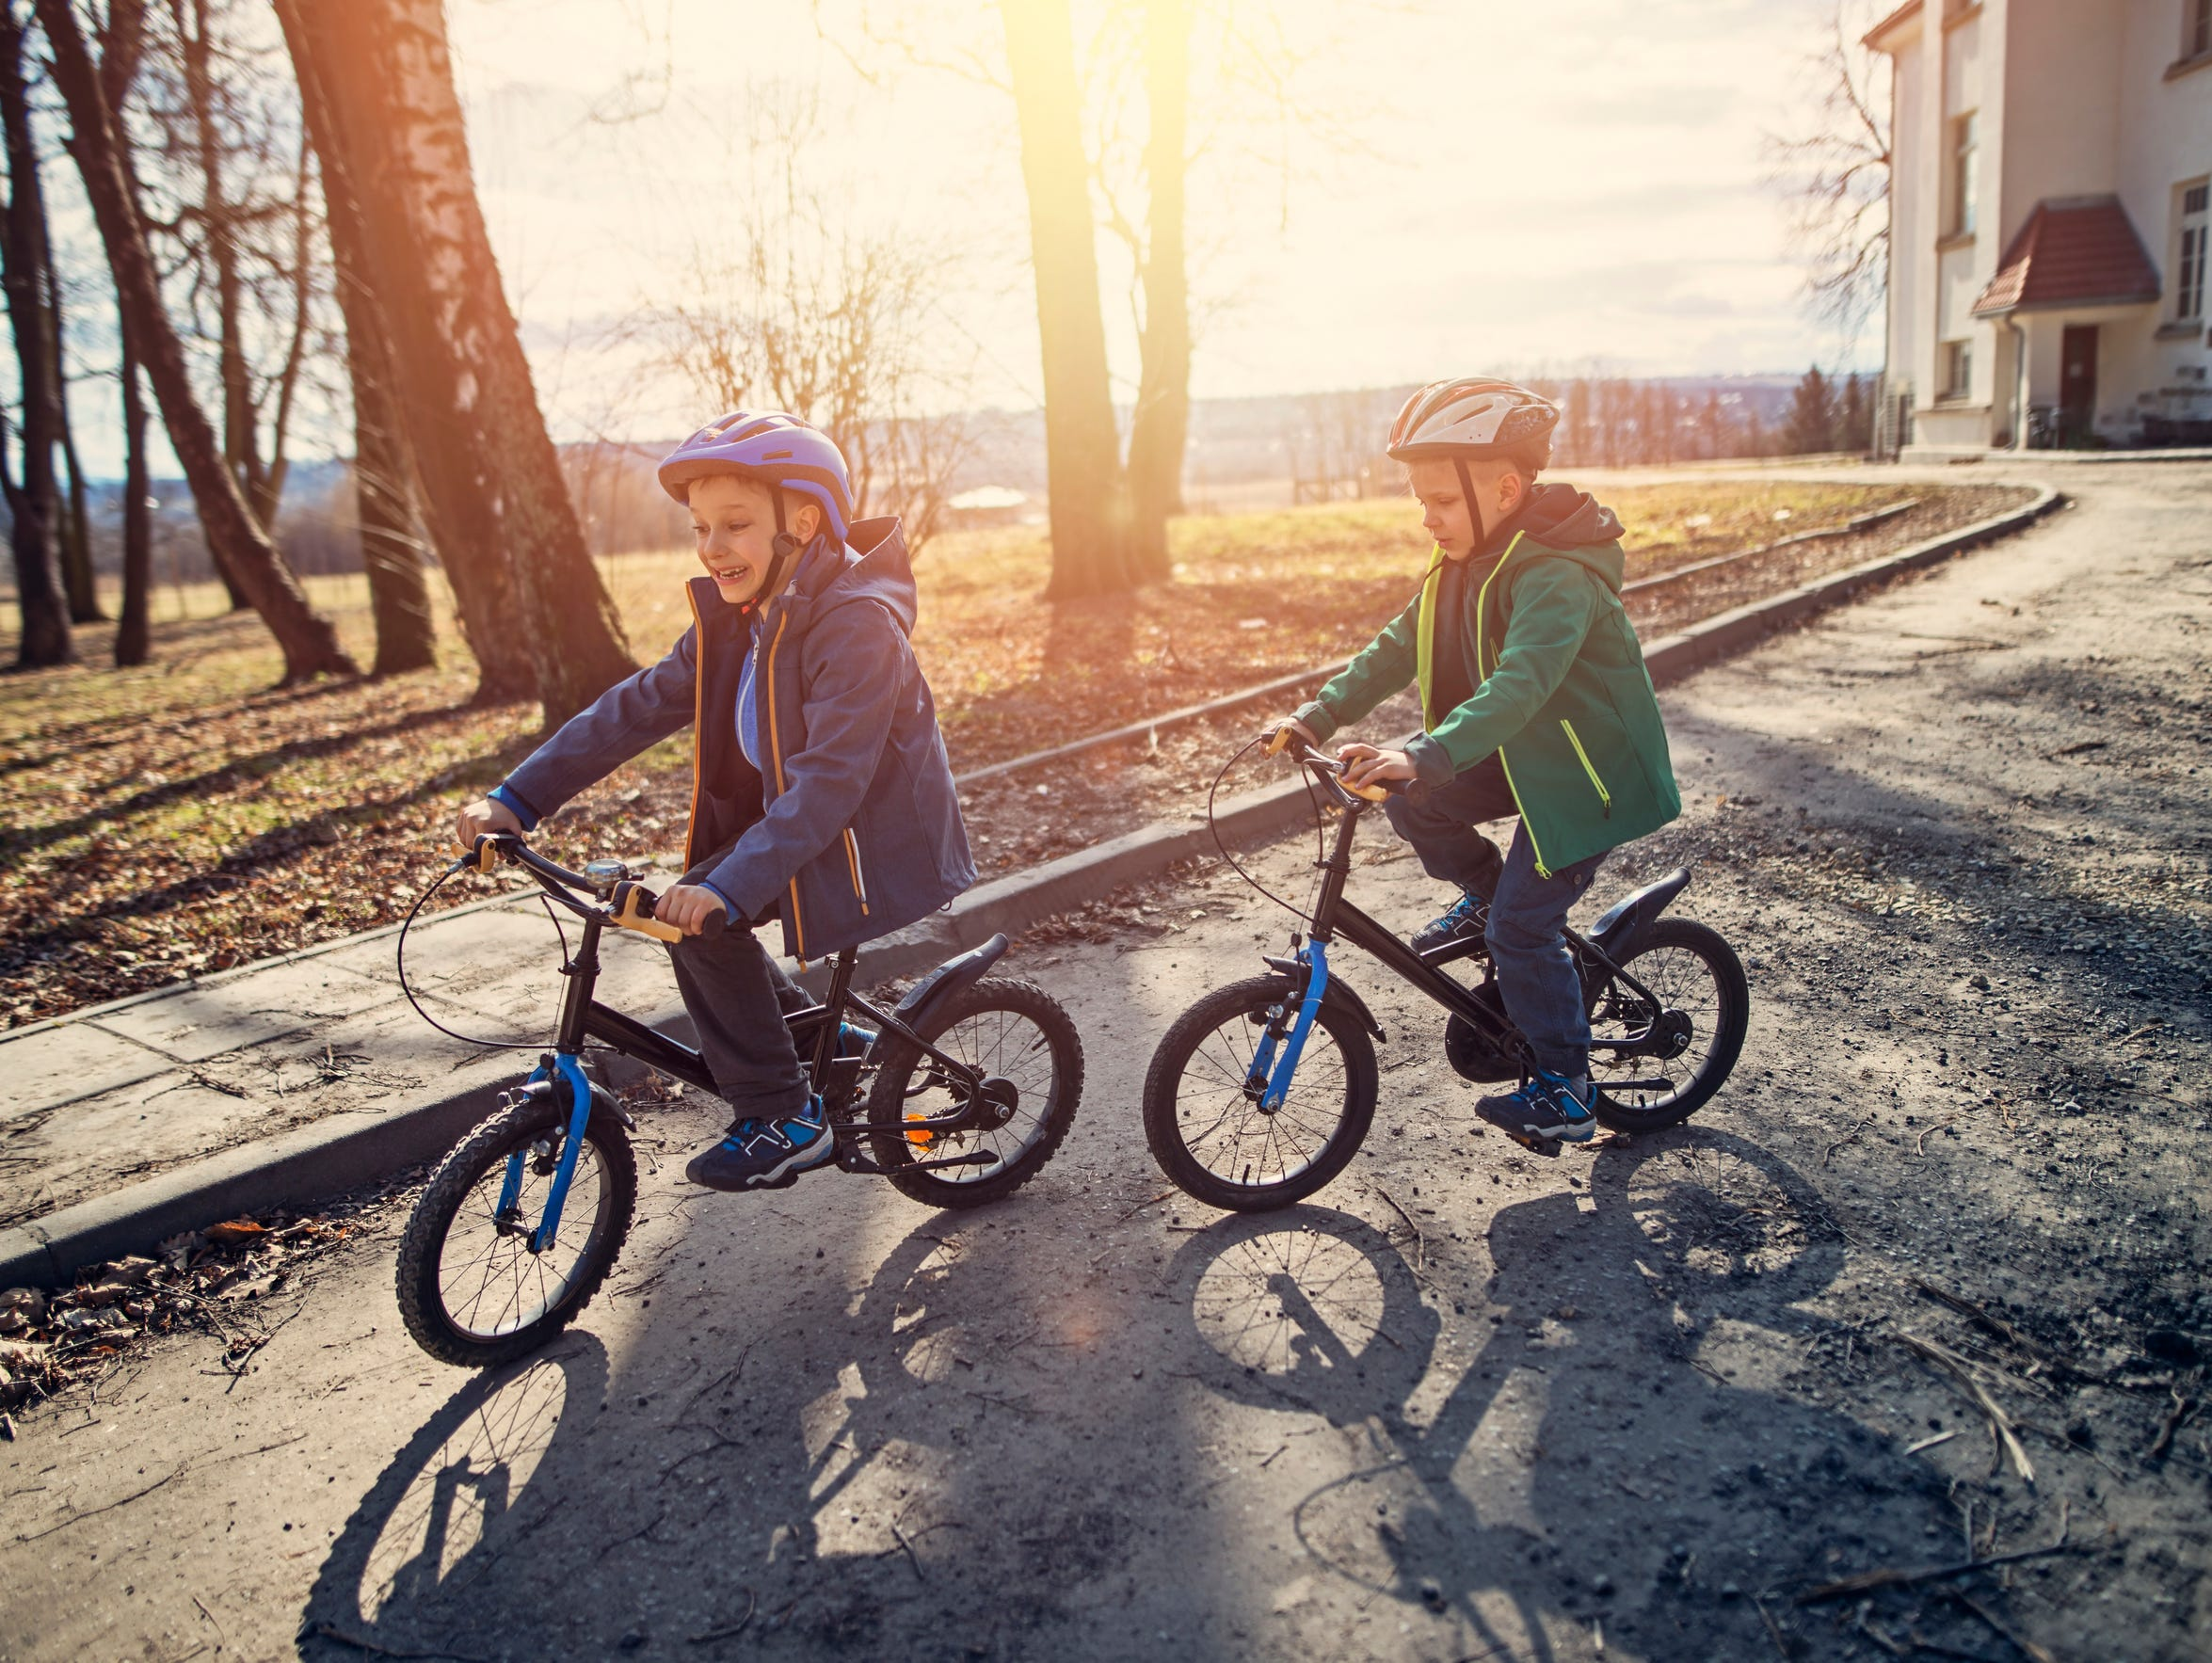 When buying a bicycle, or anything with wheels, be sure to buy a helmet to go with it, said Jamie Michael, director of Doña Ana County's Health and Human Services Department.